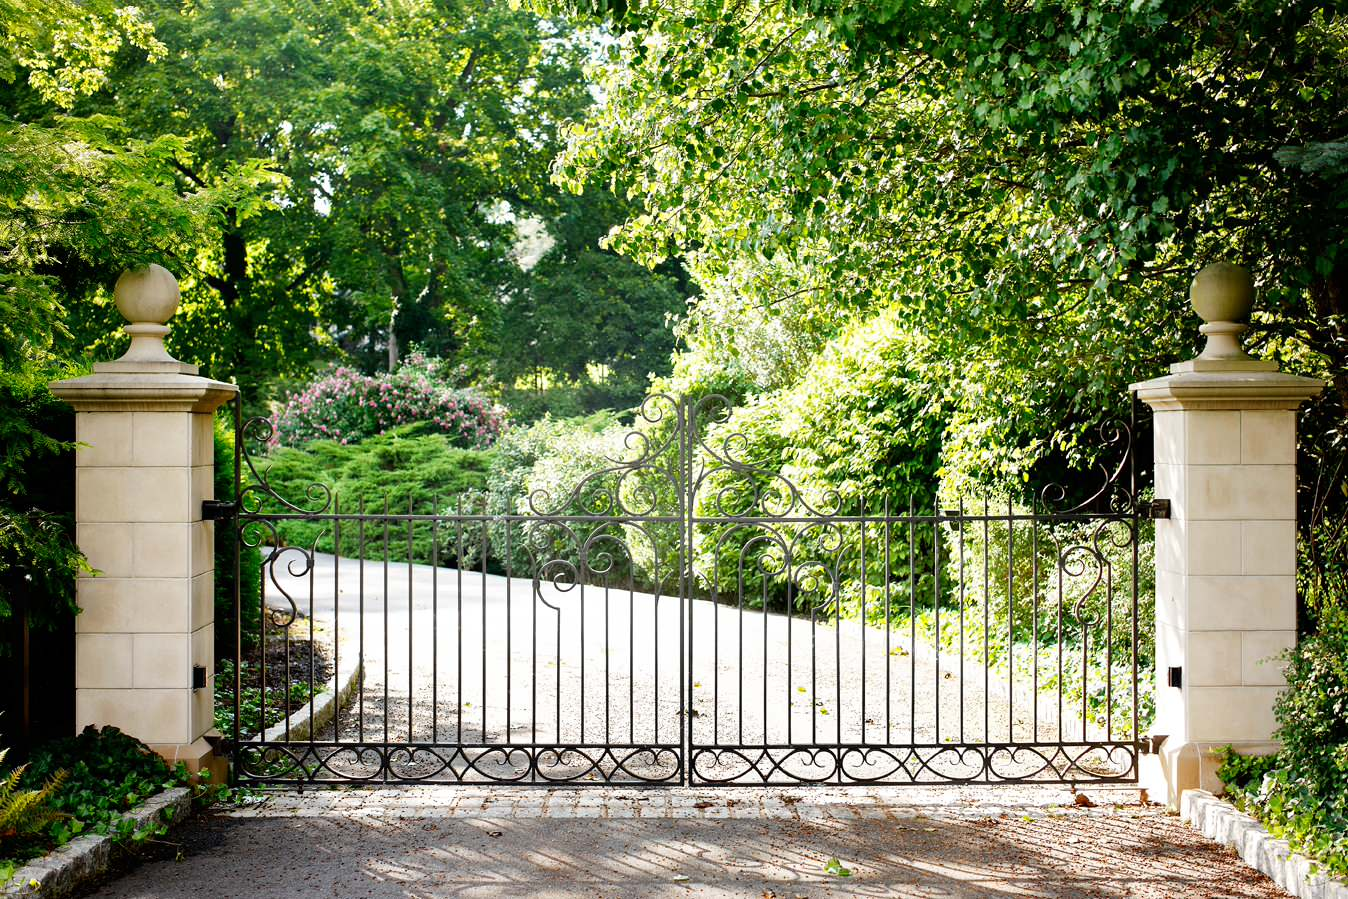 decorative bamboo fence stock photo image of ancient.htm fencing with double gate houzz  fencing with double gate houzz